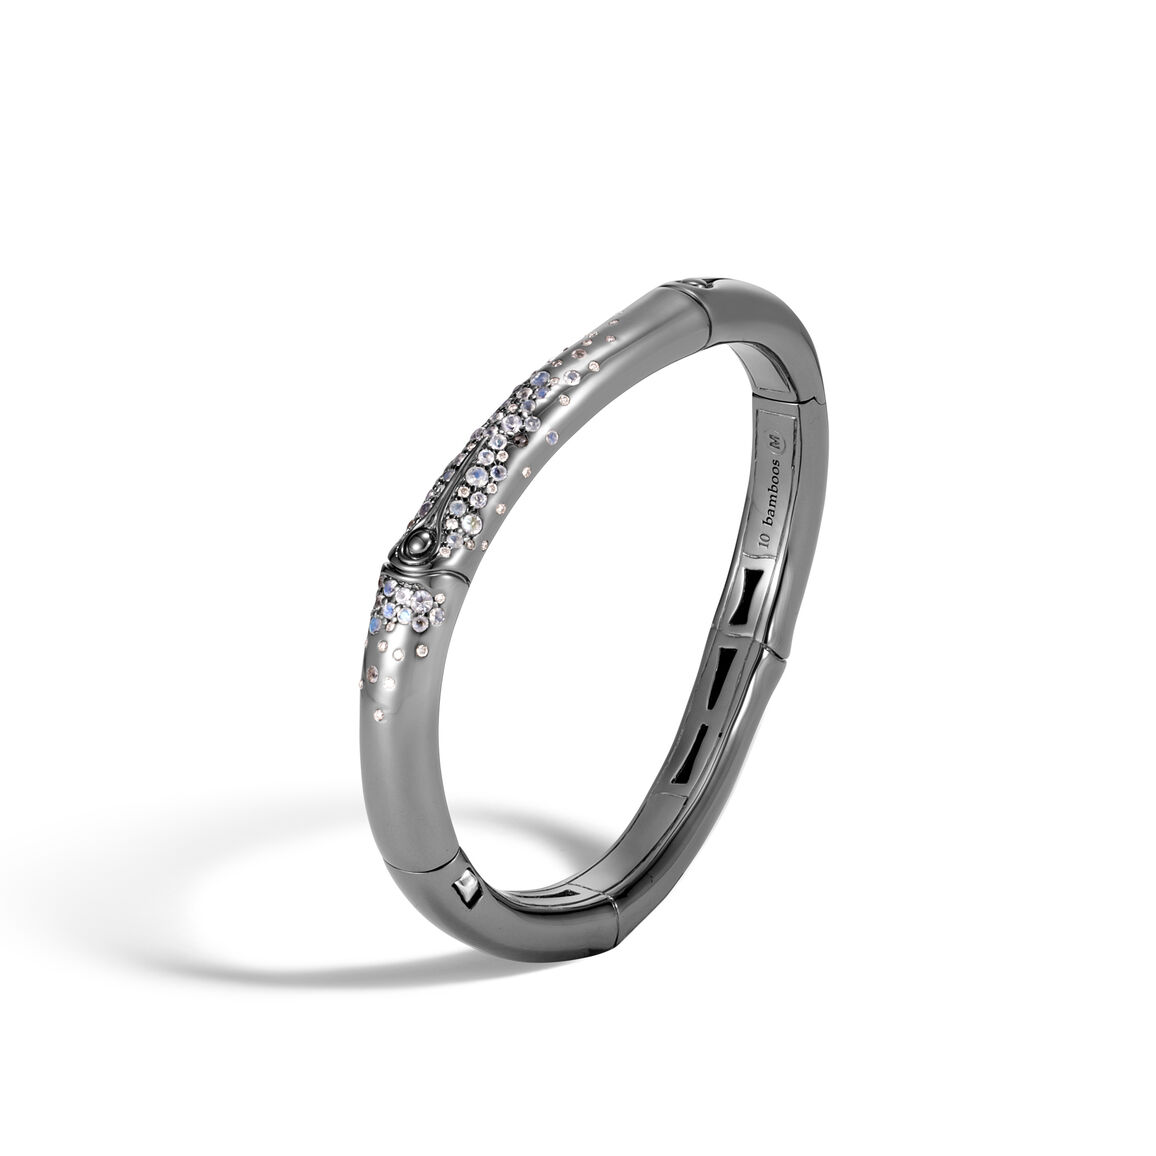 Bamboo Bangle in Blackened Silver with Gemstone and Diamonds